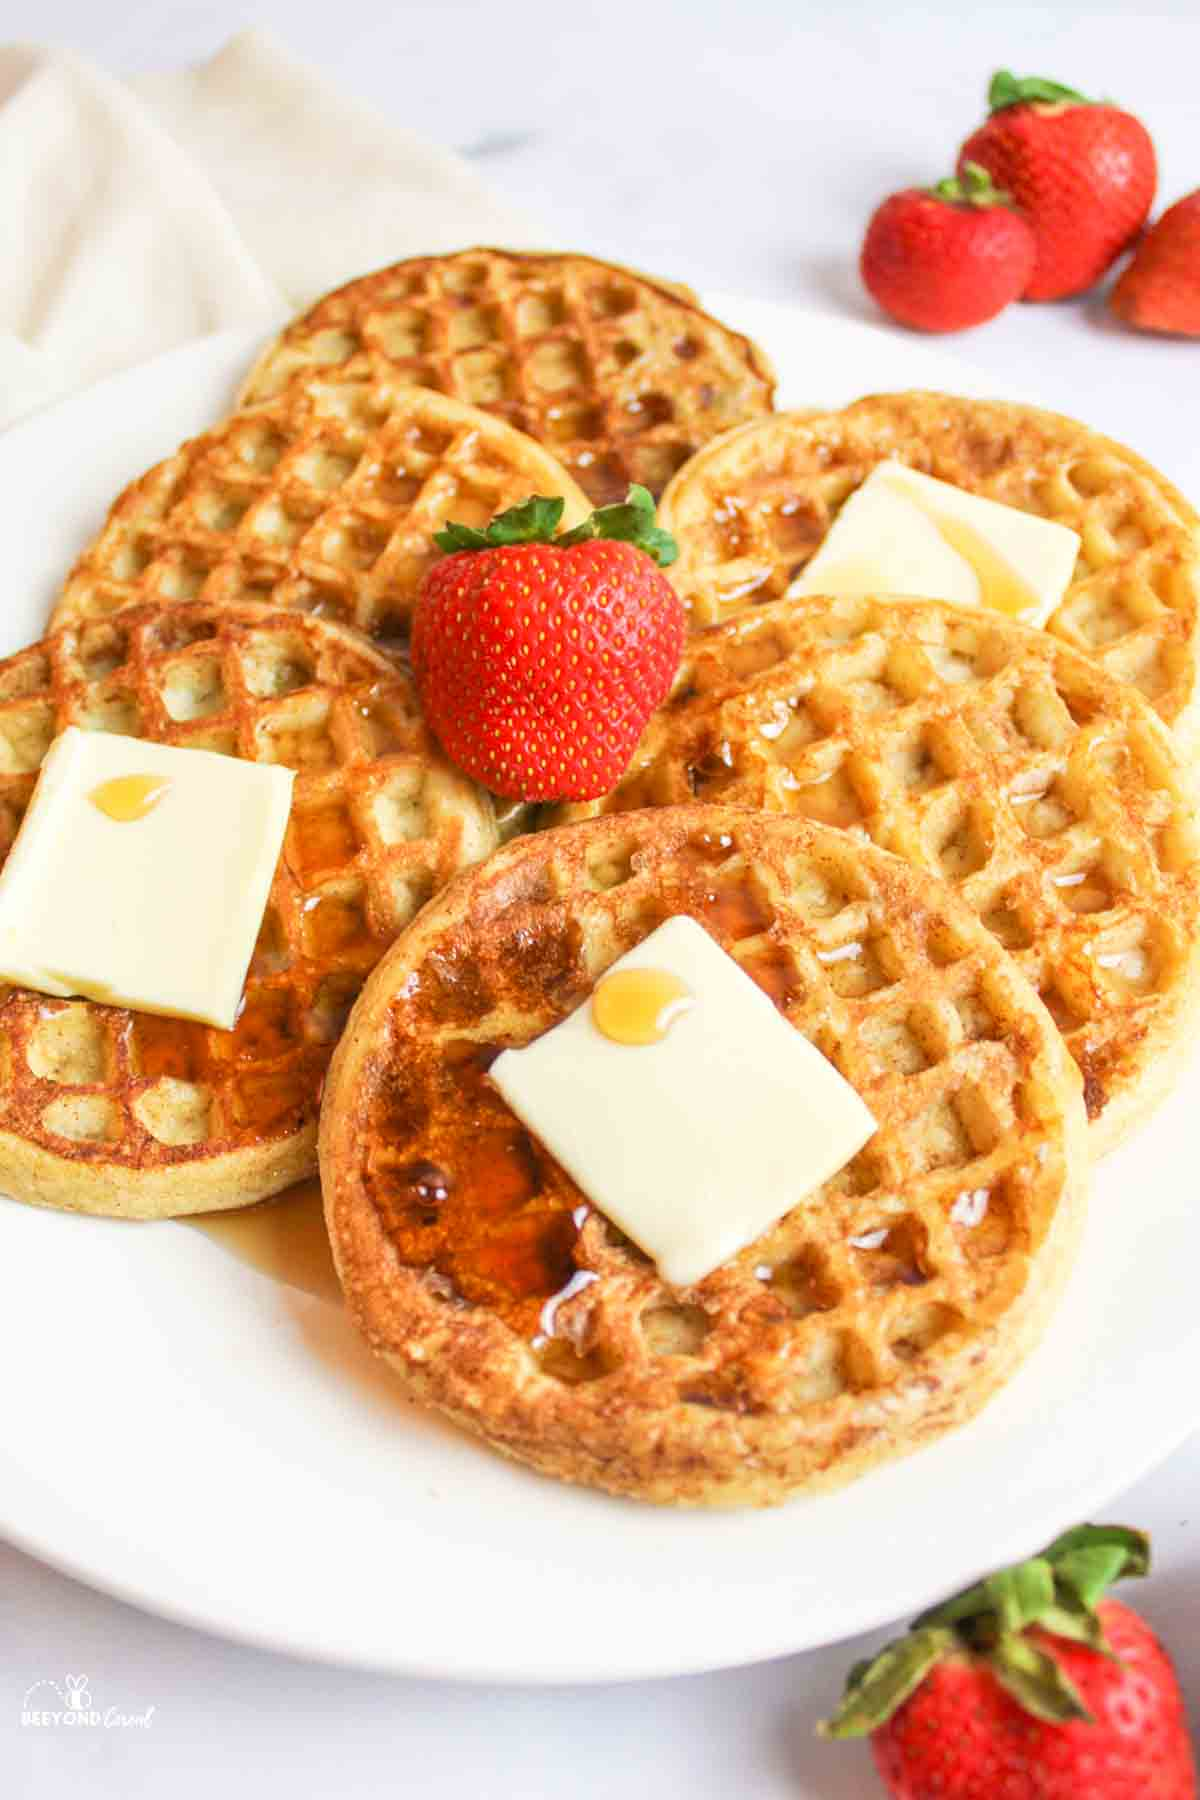 butter and syrup on a plate of waffles with a fresh strawaberry on top and to the sides